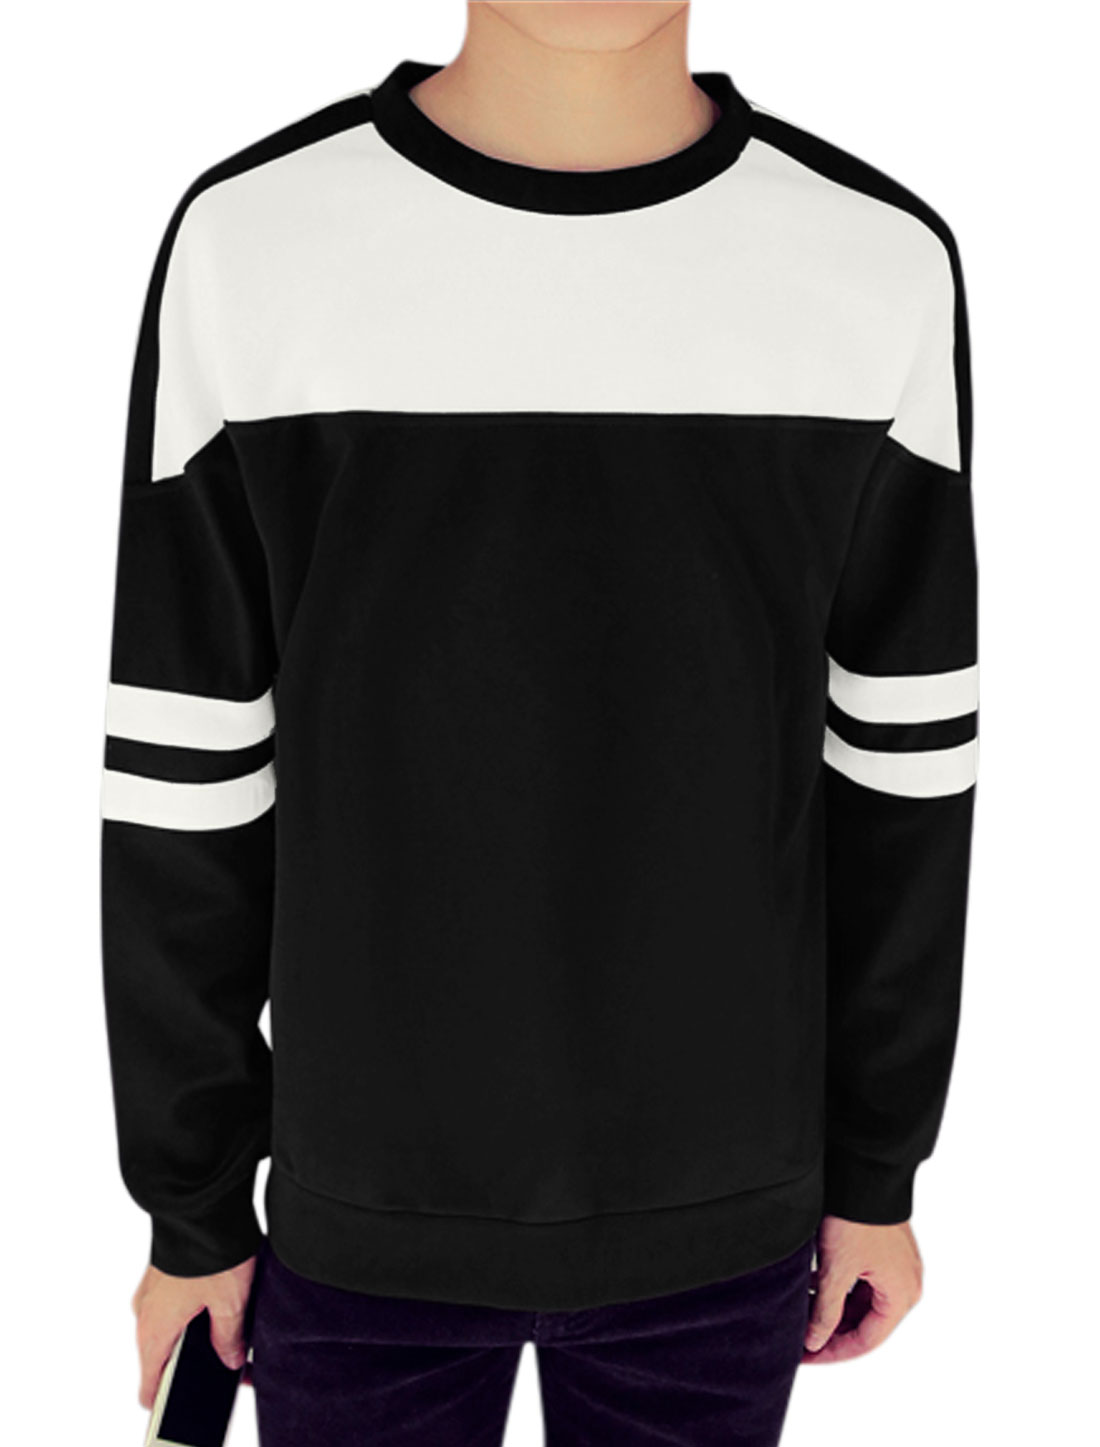 Men Color Block Stripes Detail Slipover Leisure Crew Neck Tee Shirt Black M